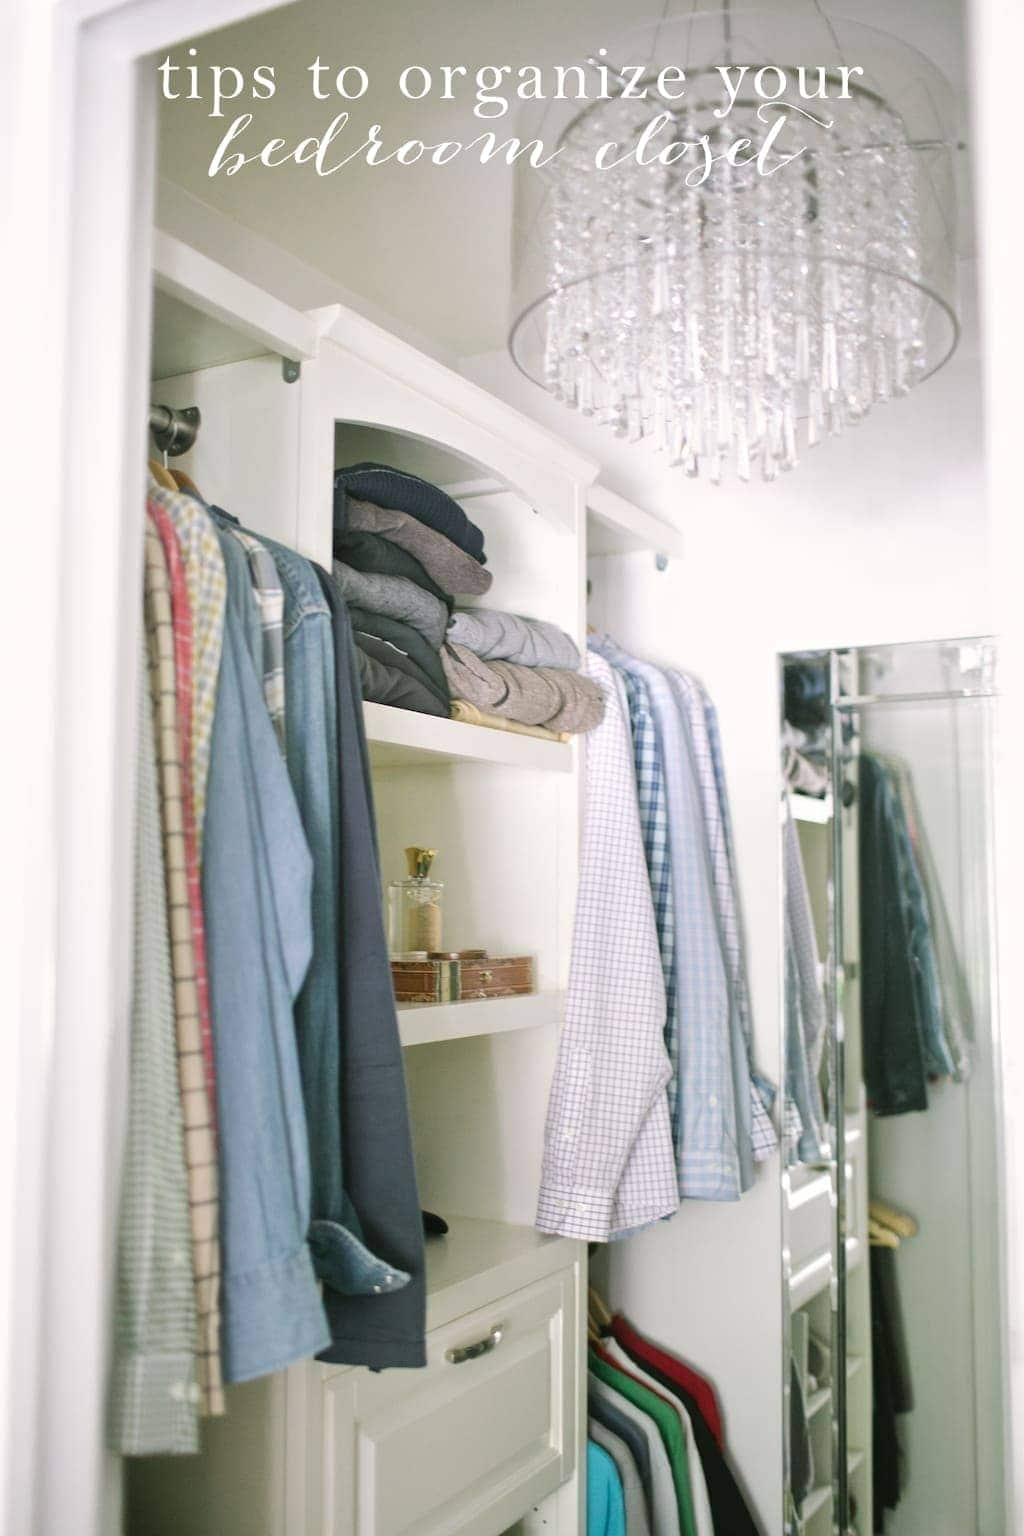 Tips to Organize your Bedroom Closet